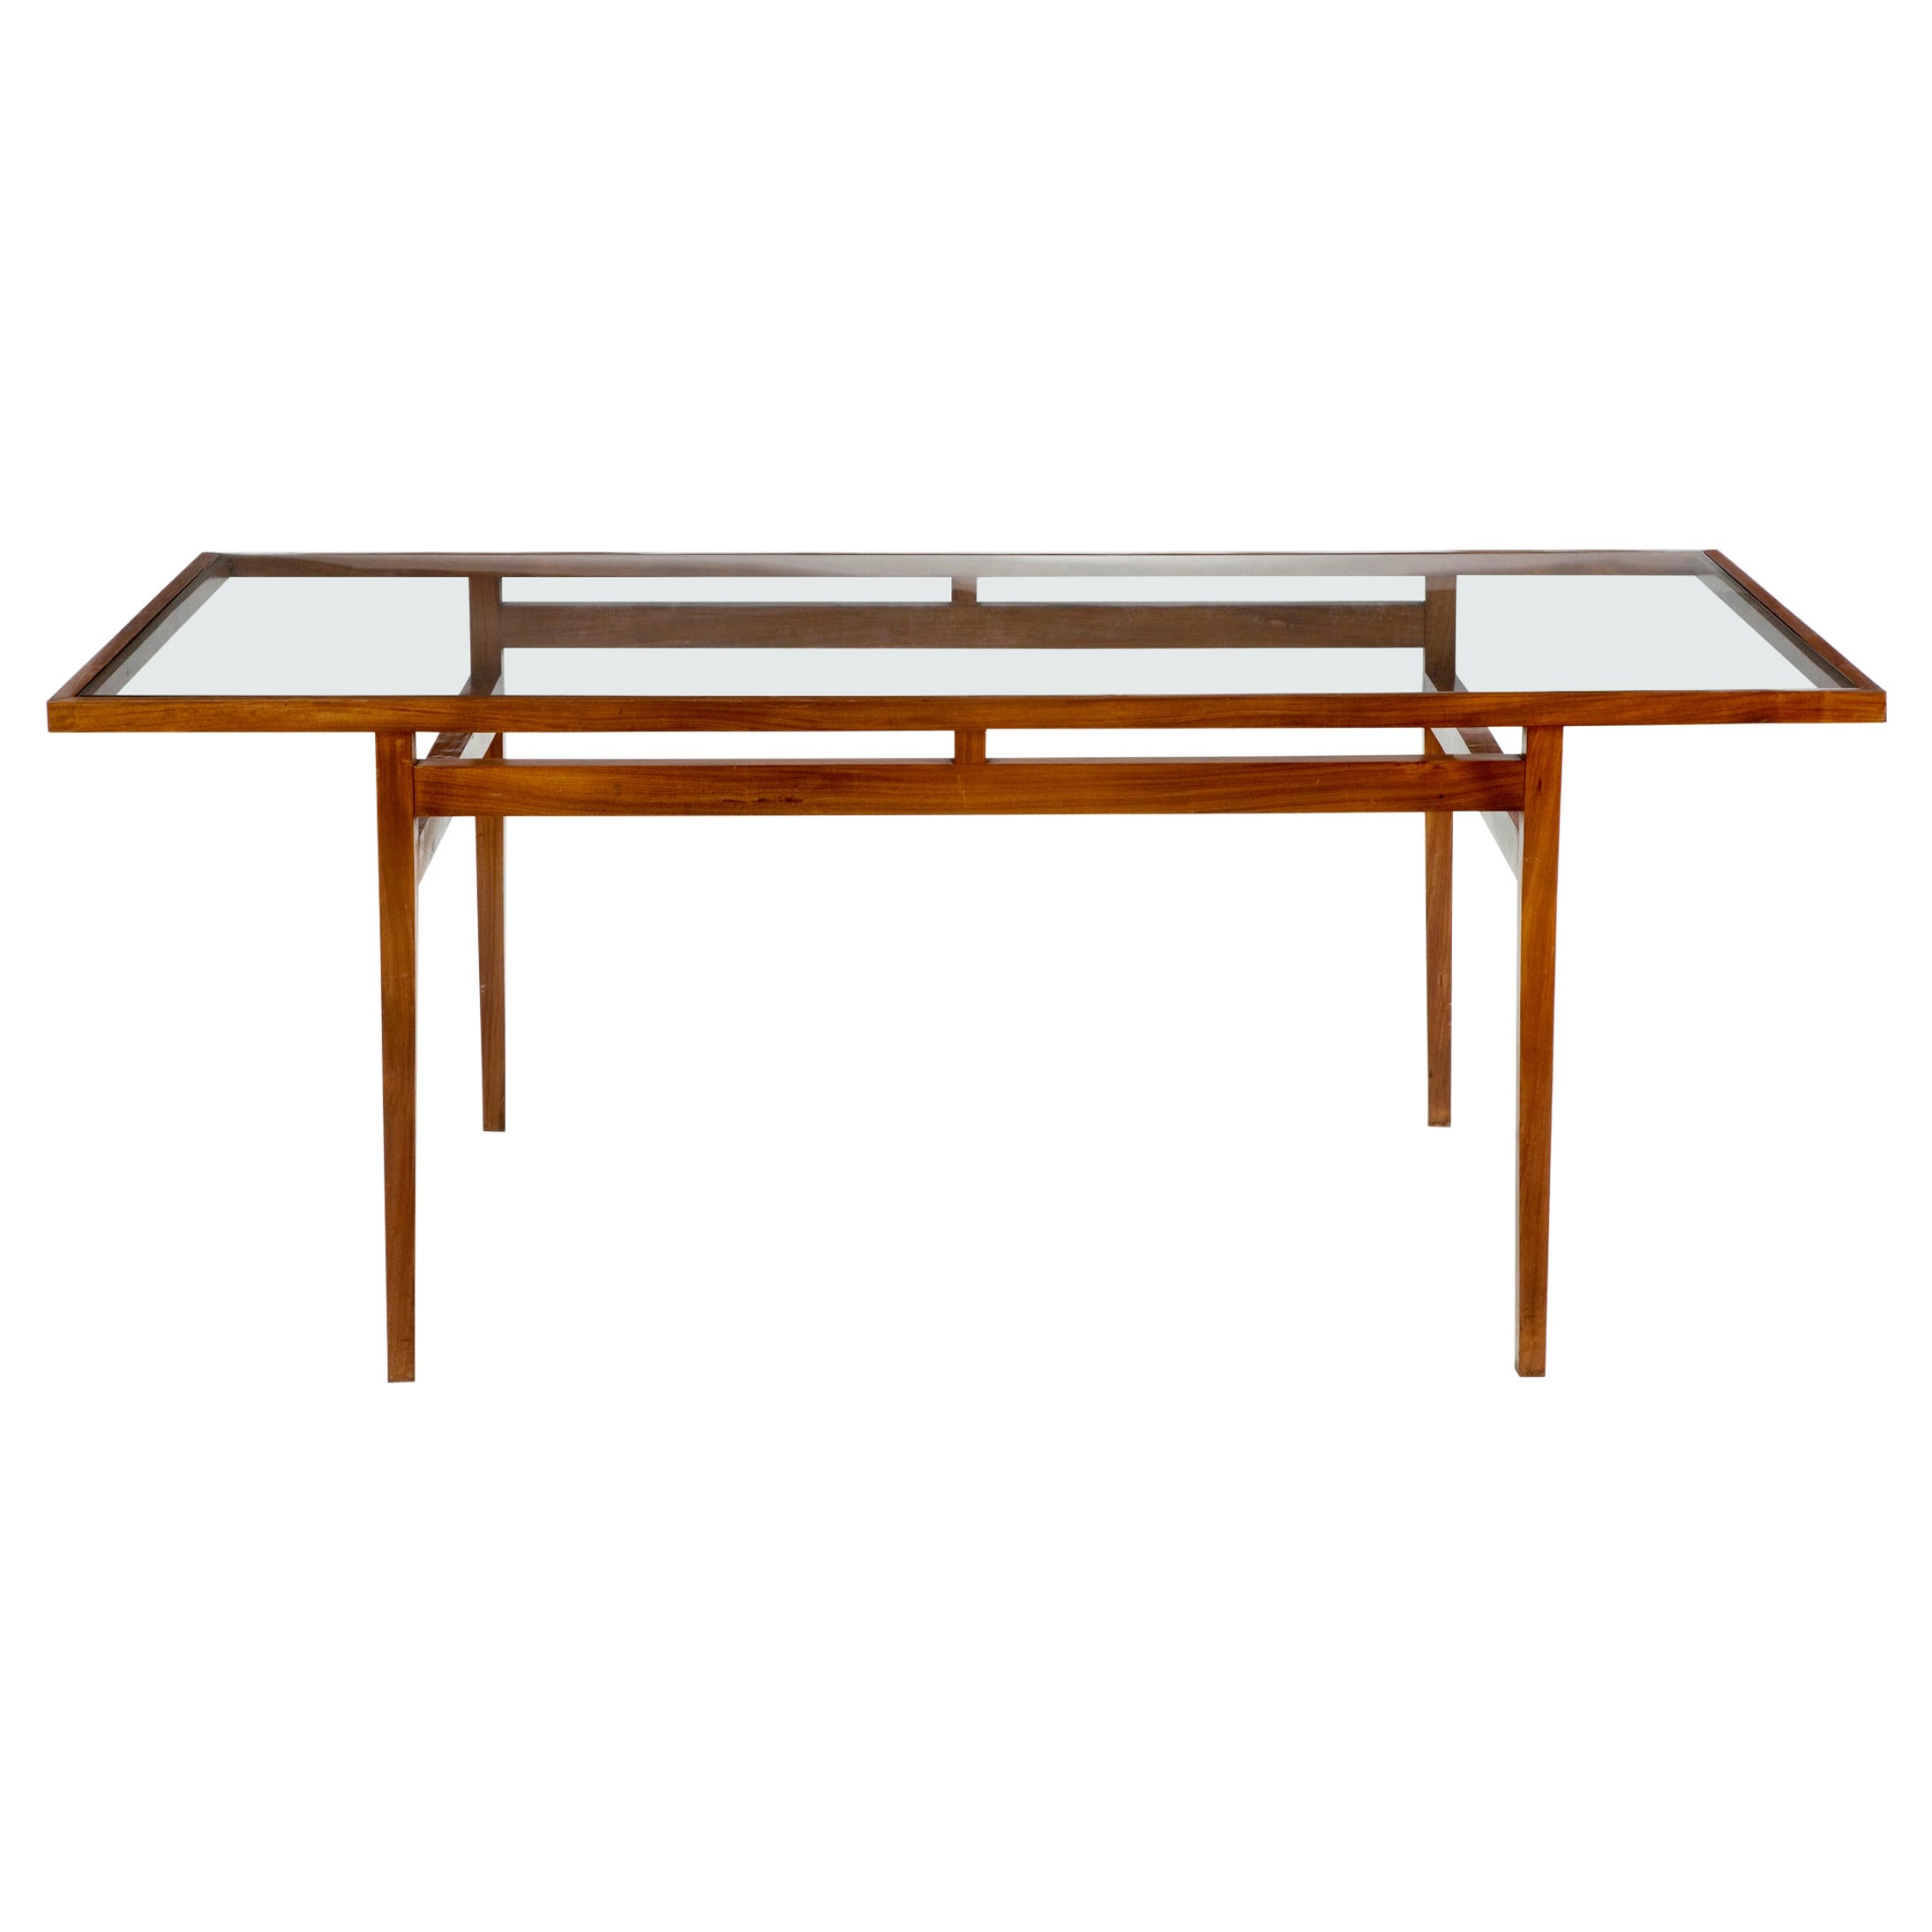 Dining Table Designed for Branco and Preto